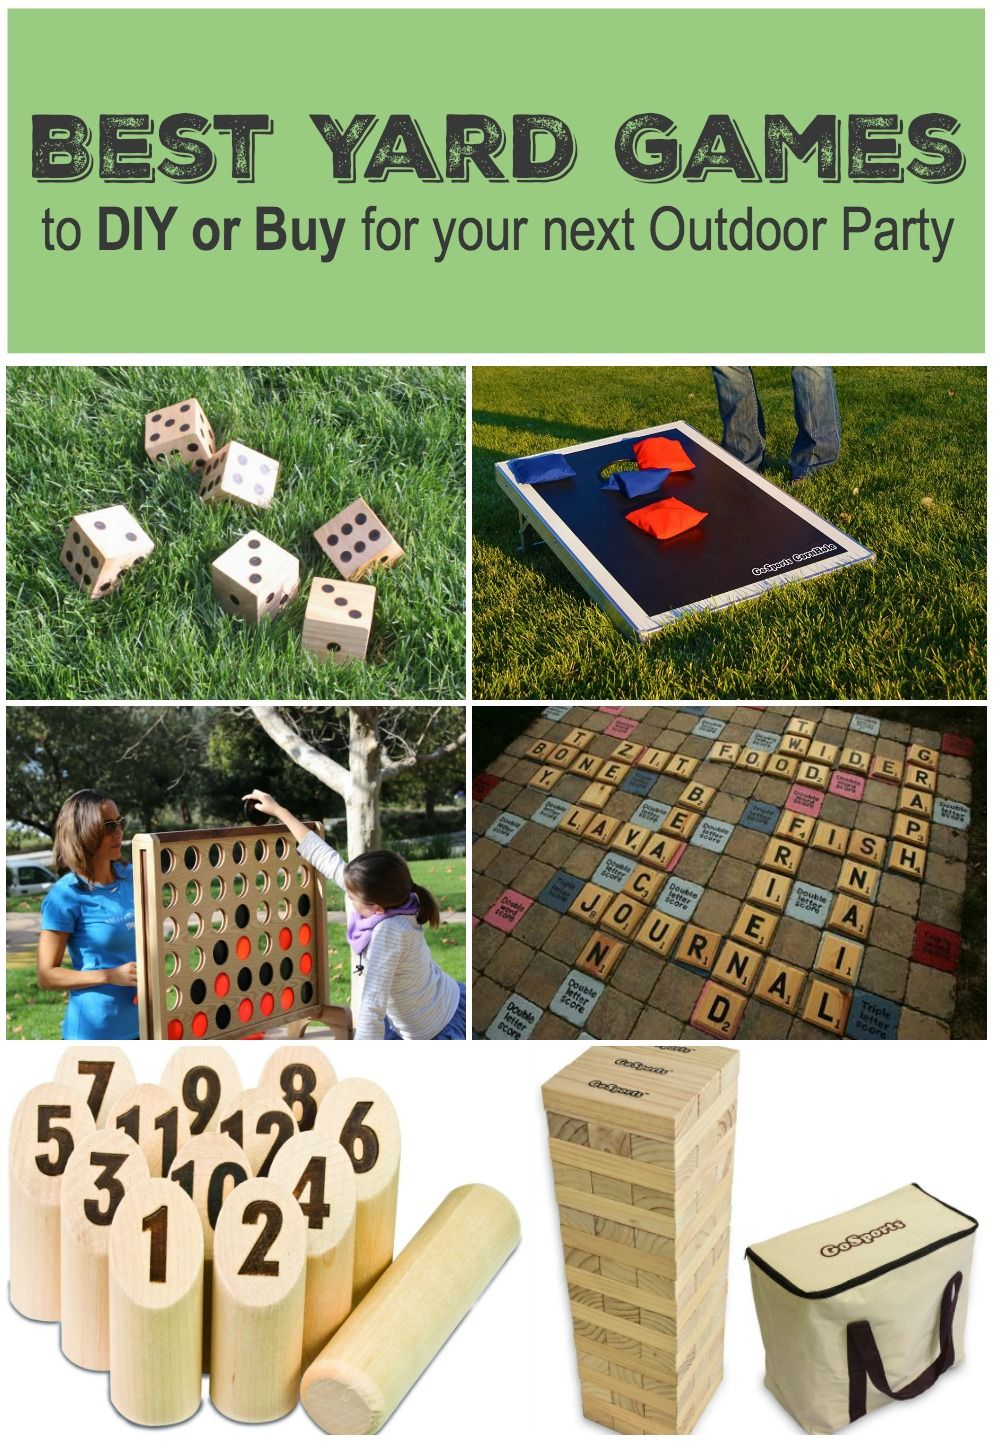 Best Yard Games For An Outdoor Party Diy Yard Games Yard Games